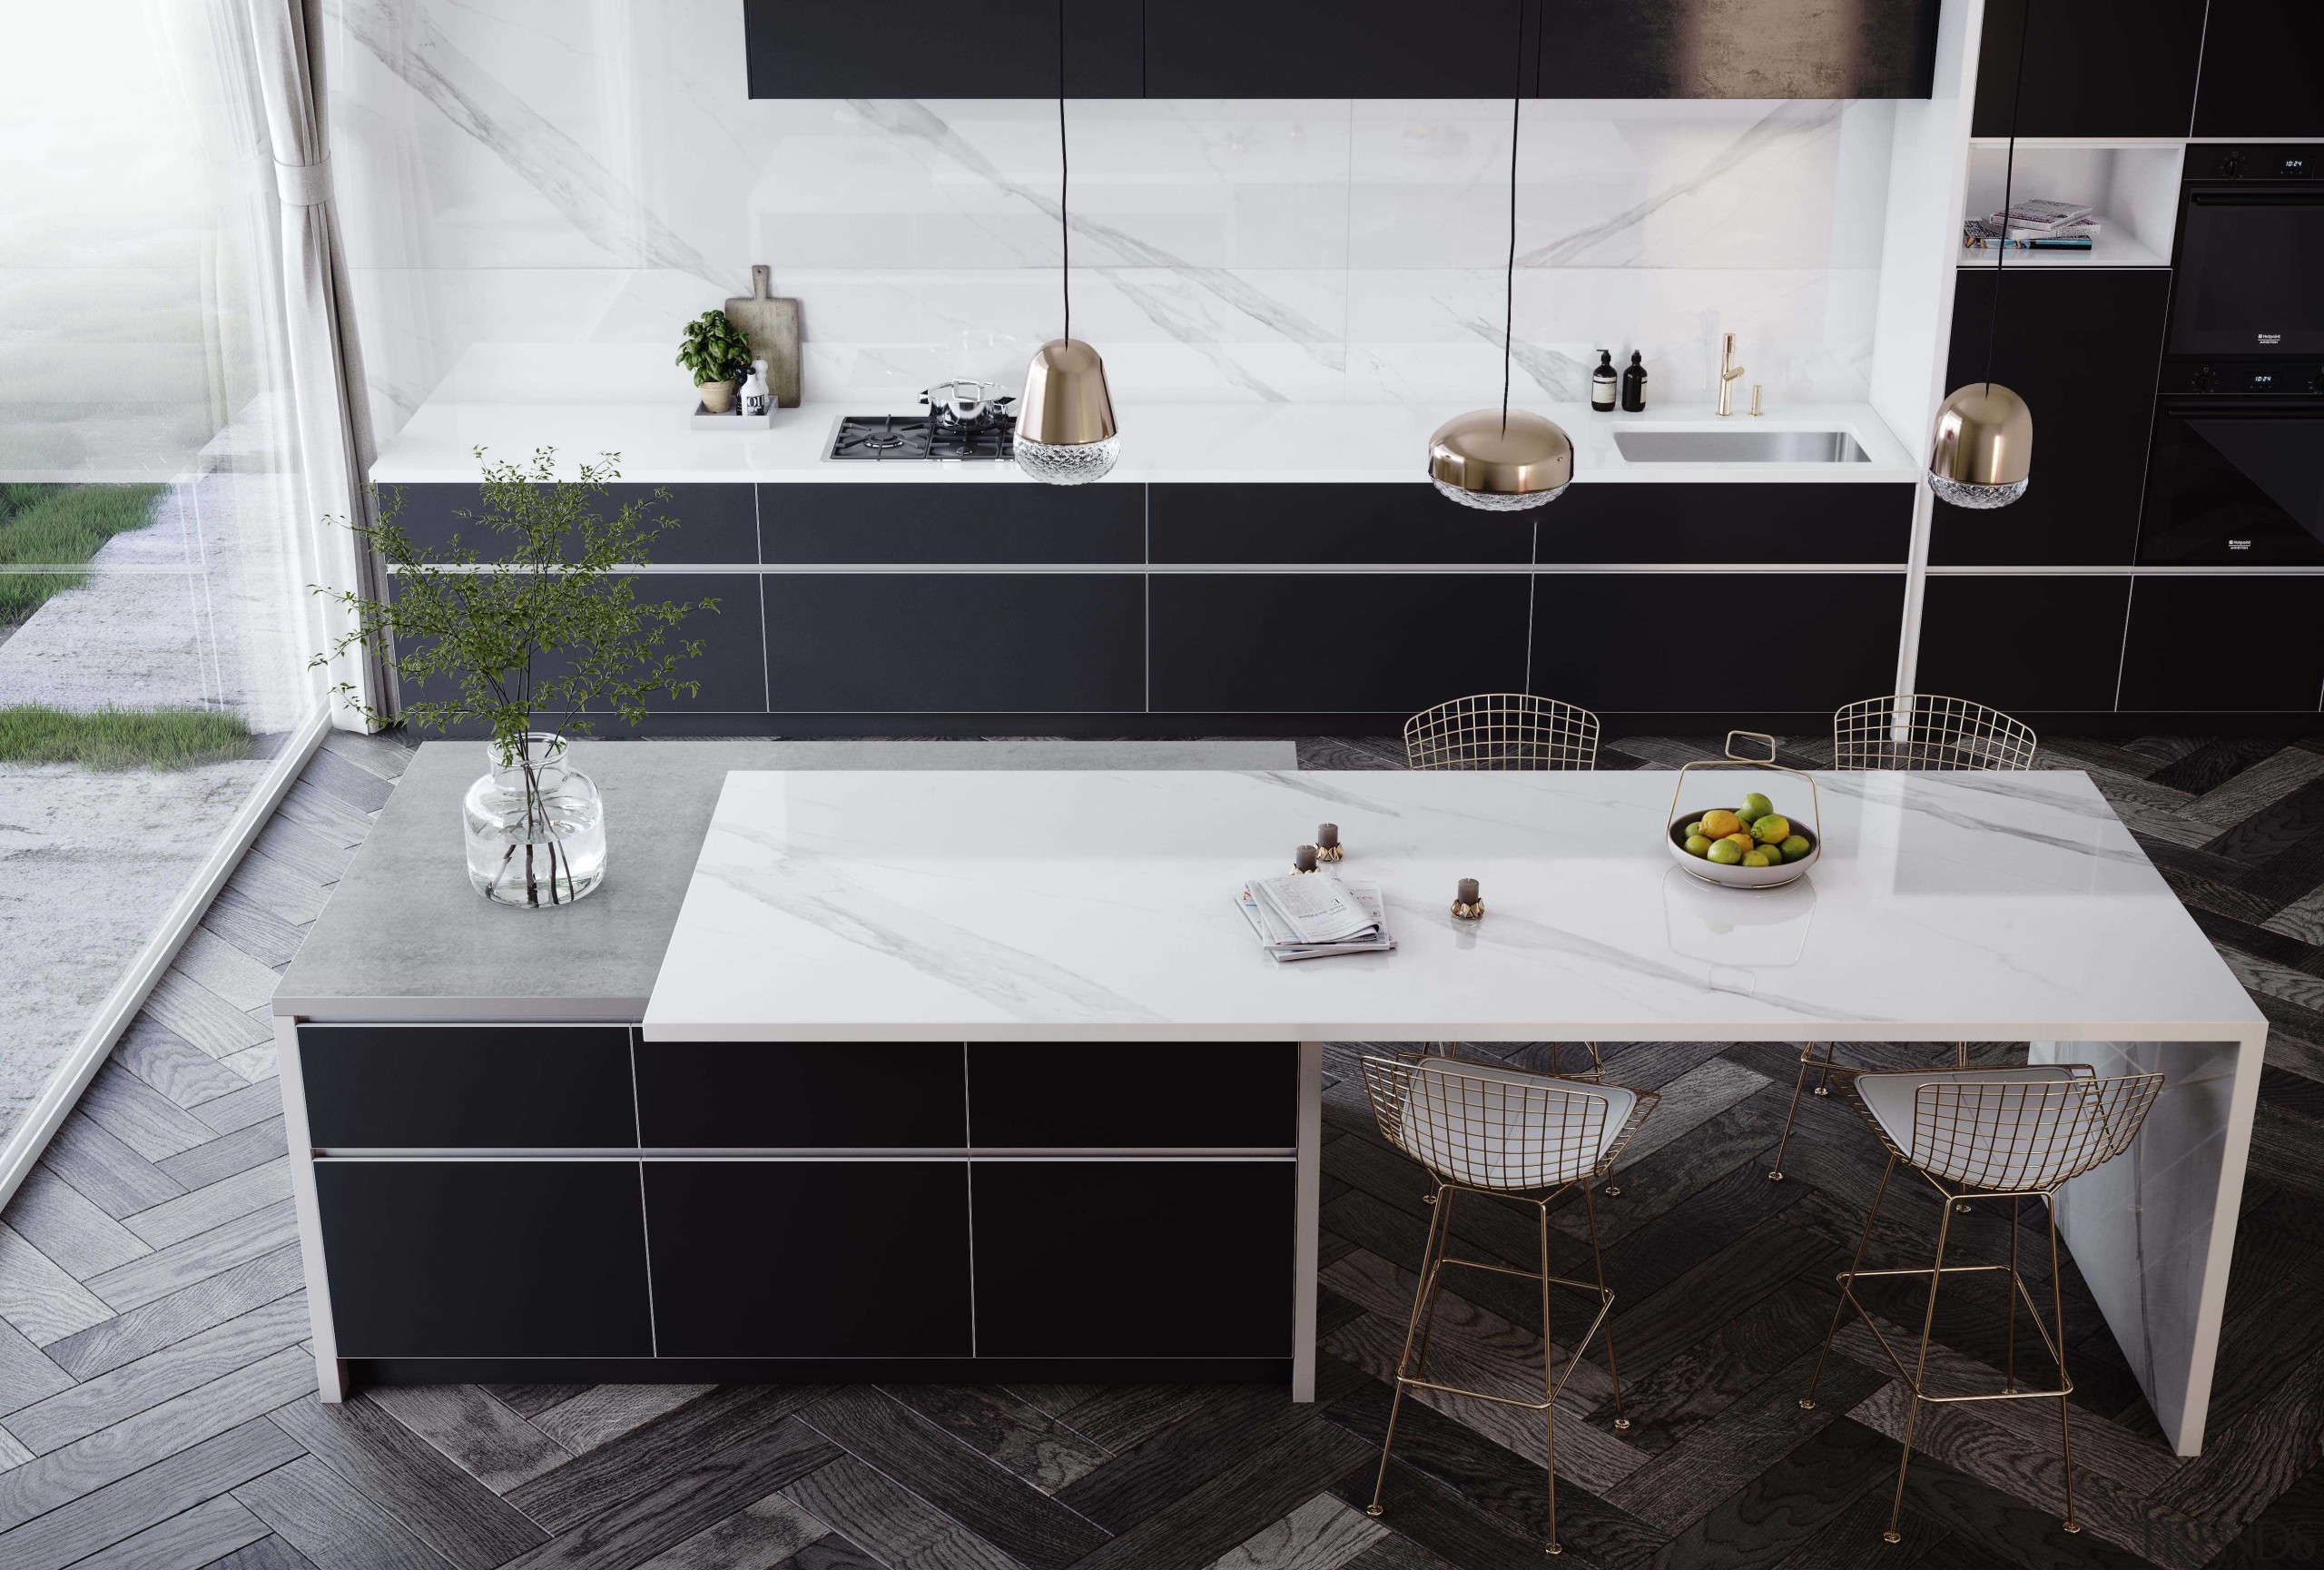 Dekton Kitchen – Olimpo - architecture | bathroom architecture, bathroom, black, countertop, design, floor, flooring, furniture, house, interior design, kitchen, marble, material property, property, room, sink, table, tap, tile, wall, white, black, gray, white